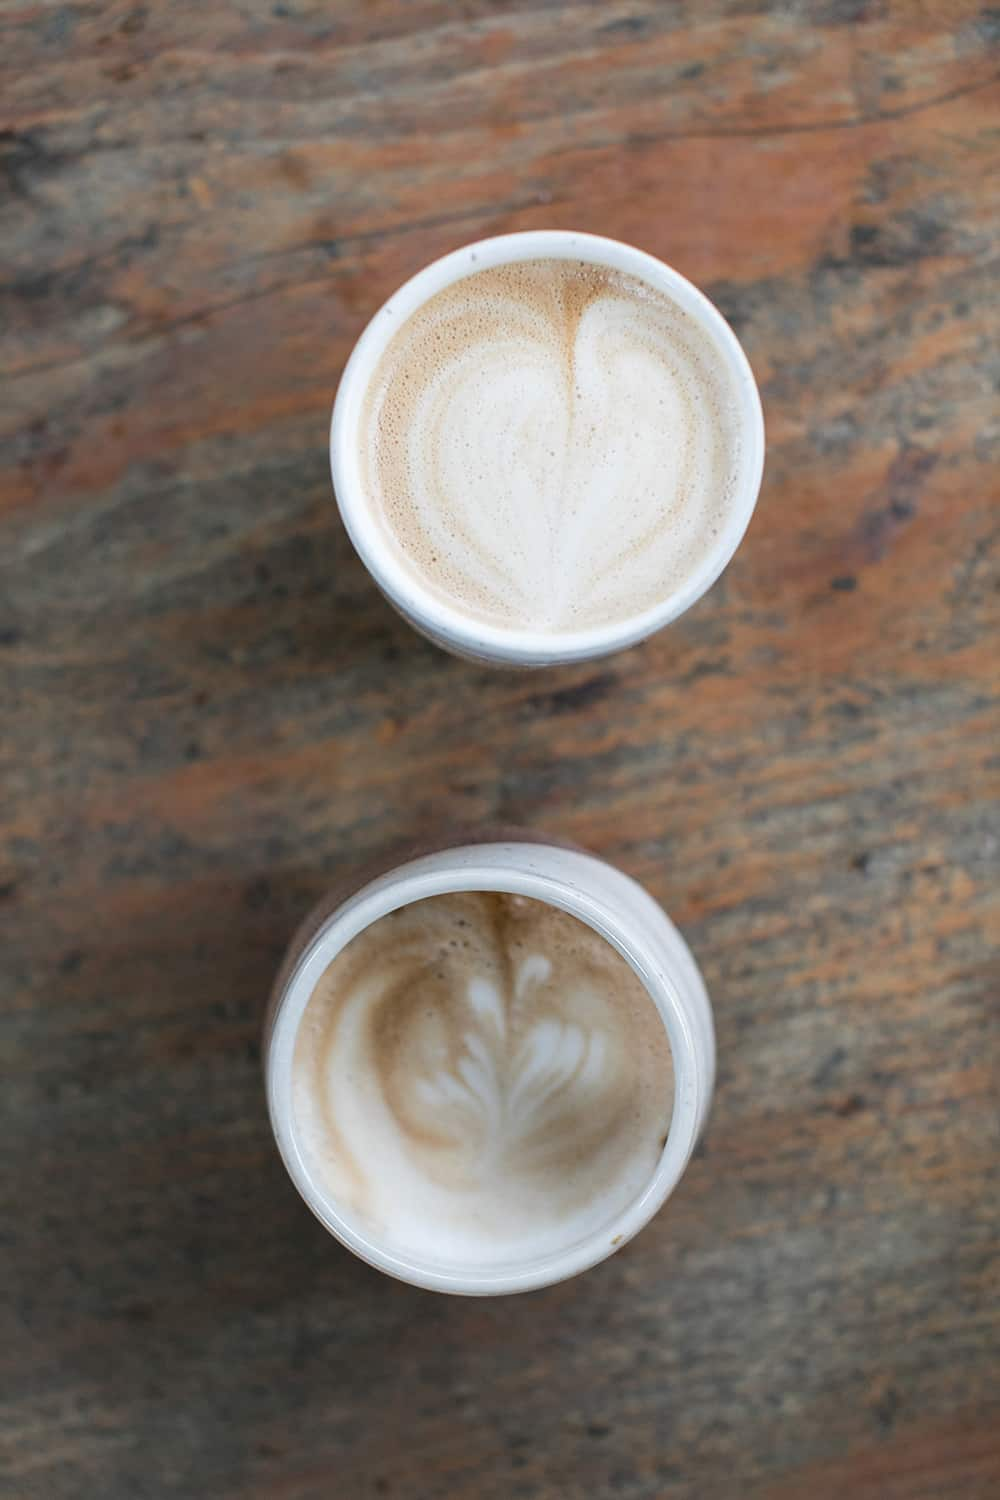 Two lattes on a wooden table